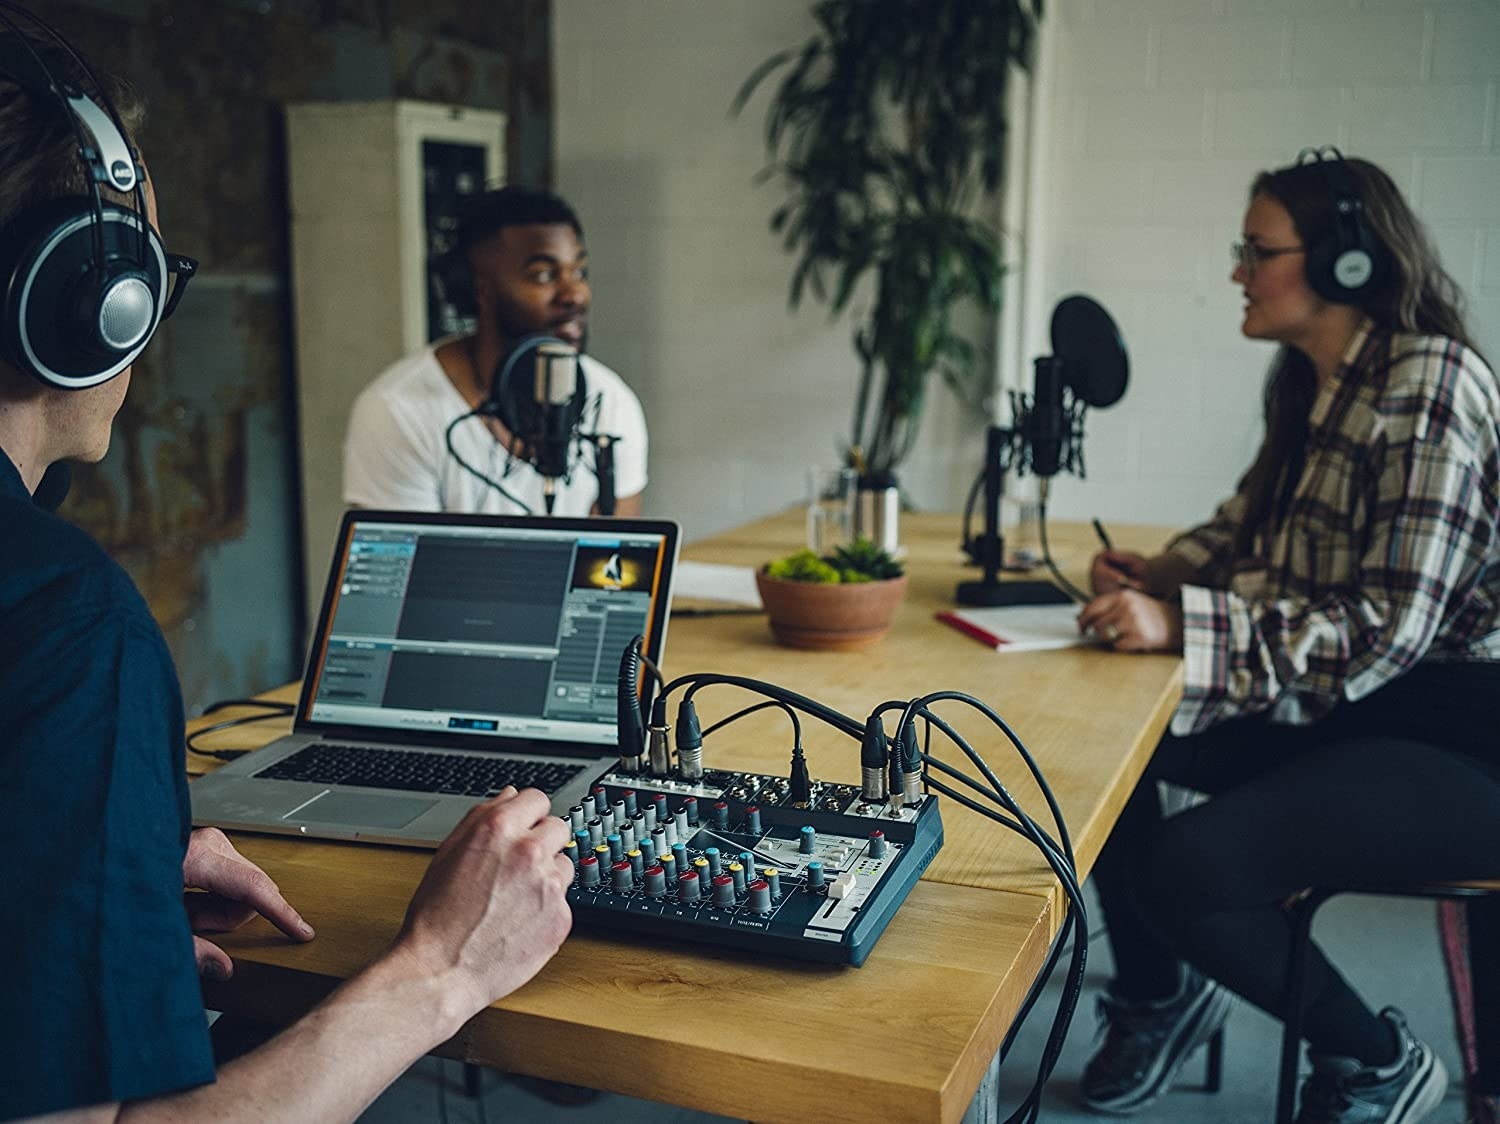 Three people sitting in a room with microphones. One of them is using the mixer.